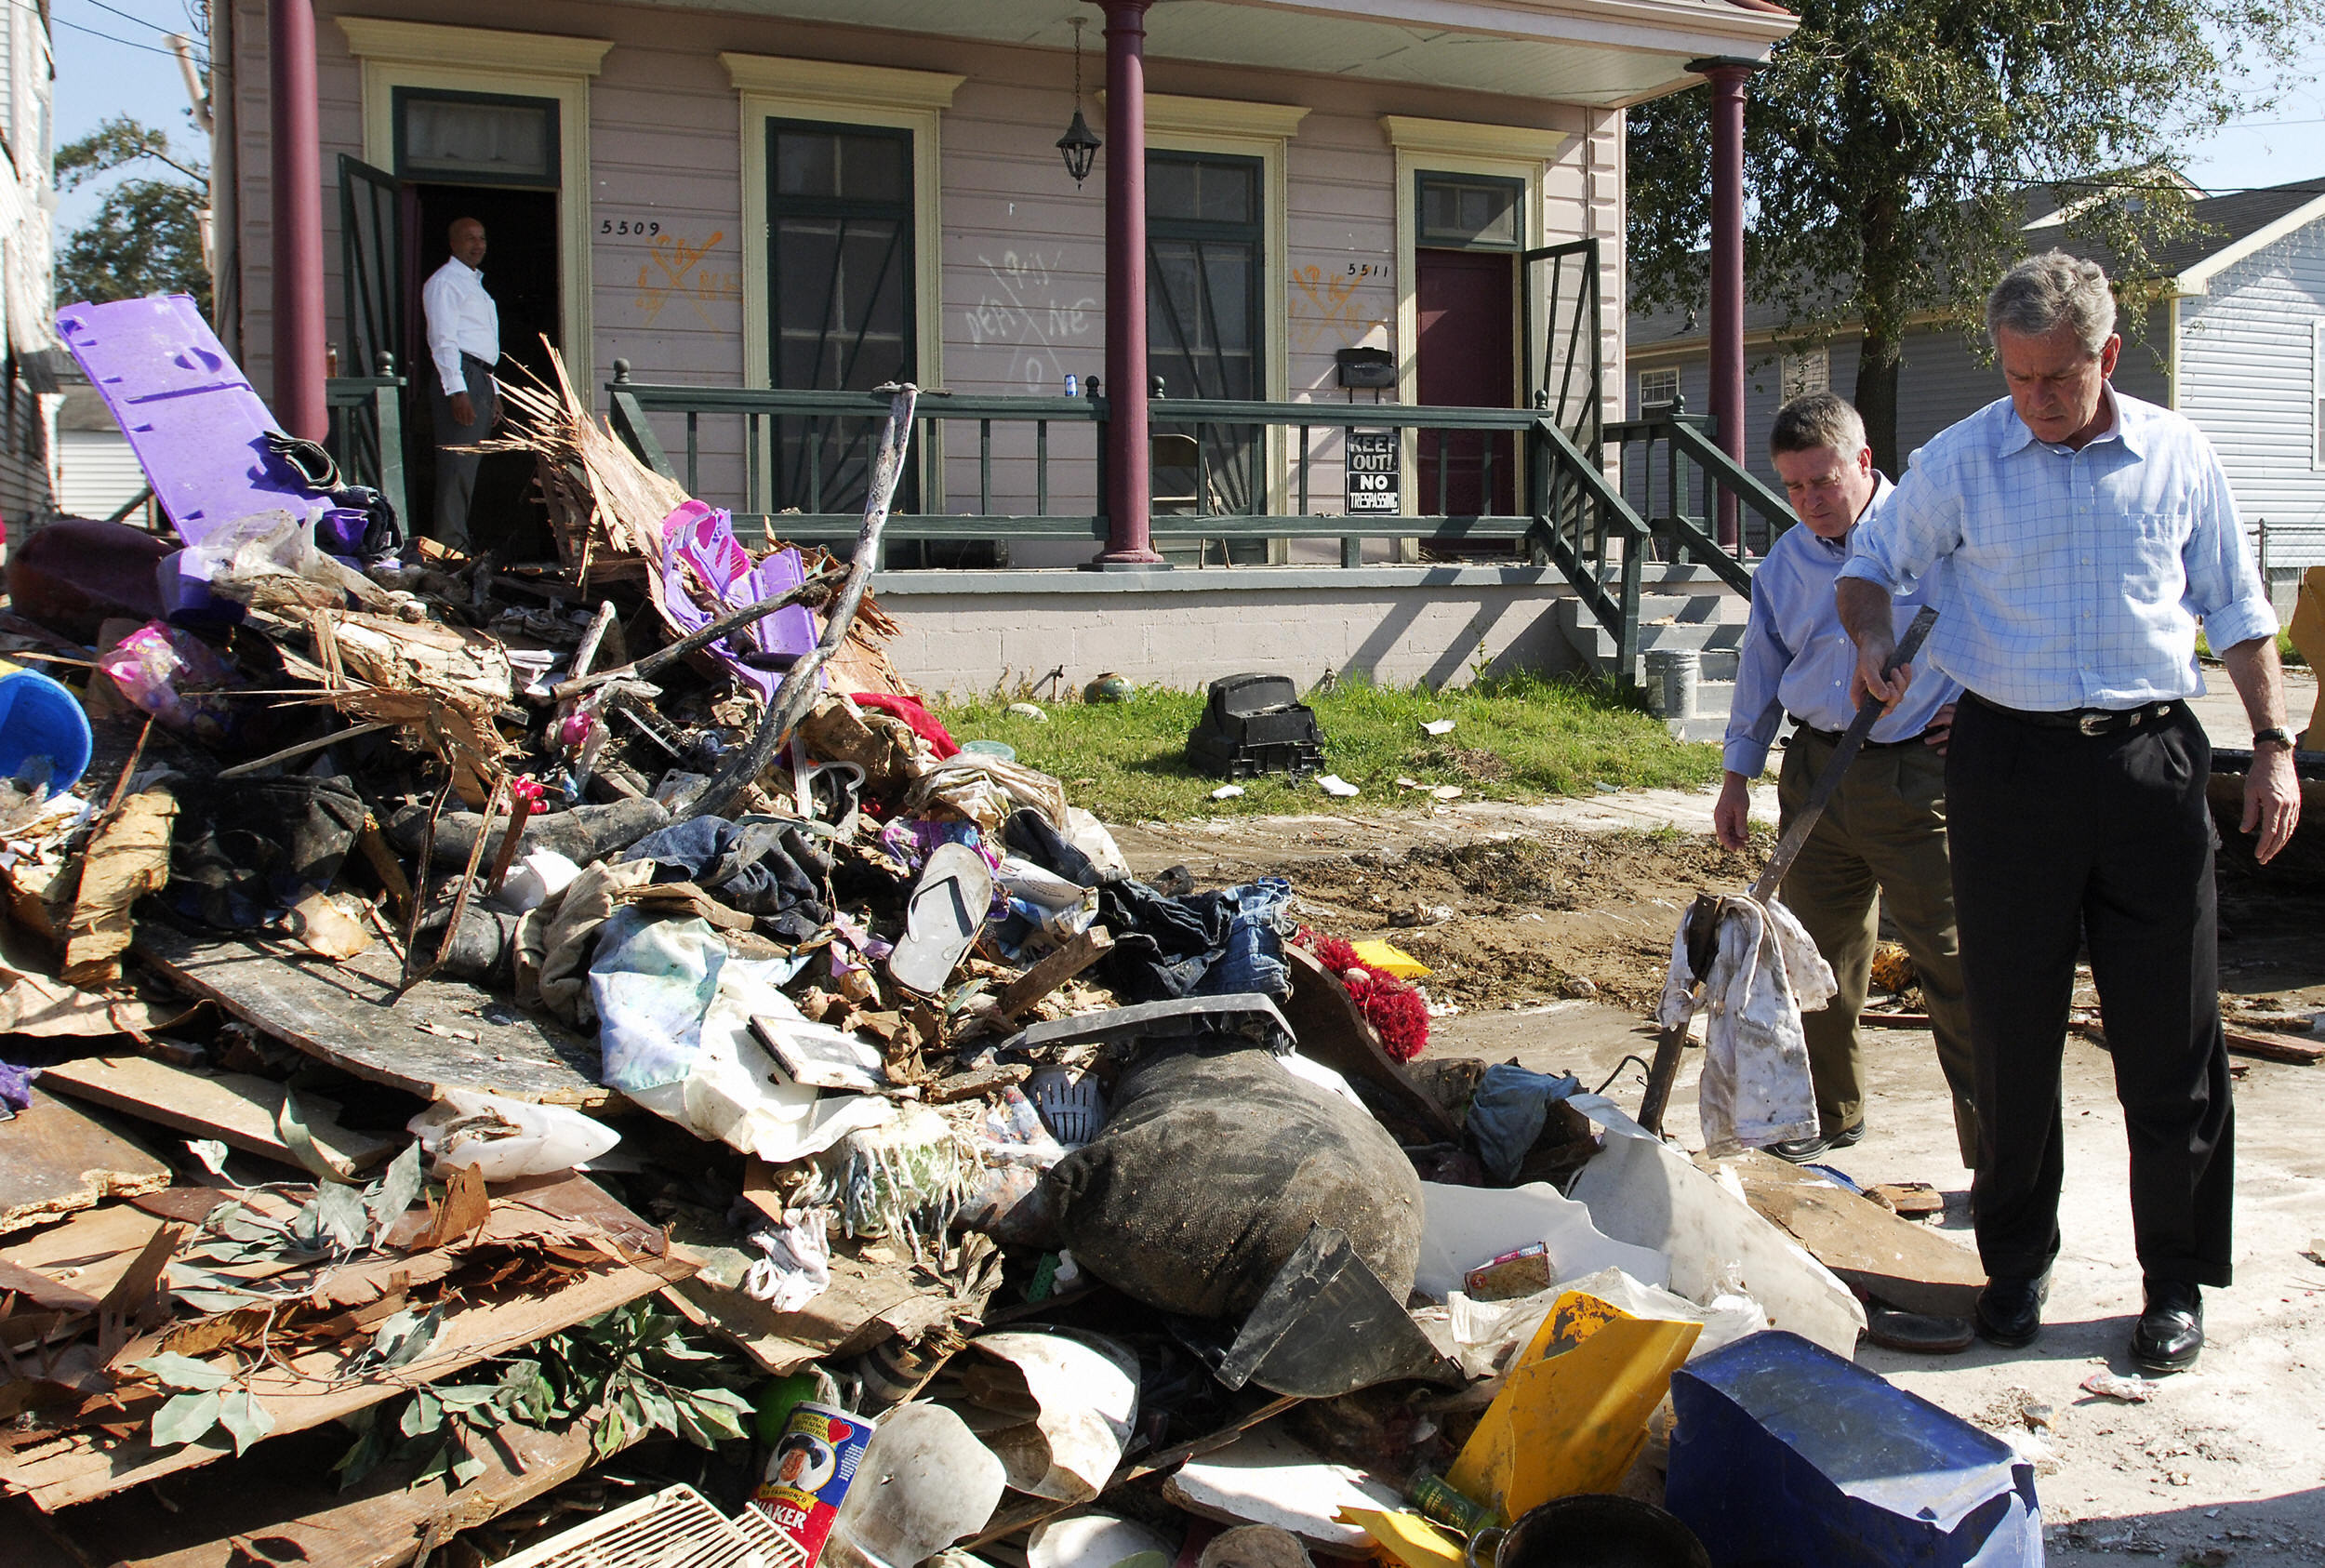 March 2006: Former US President George W. Bush picks up debris in the aftermath of Hurricane Katrina